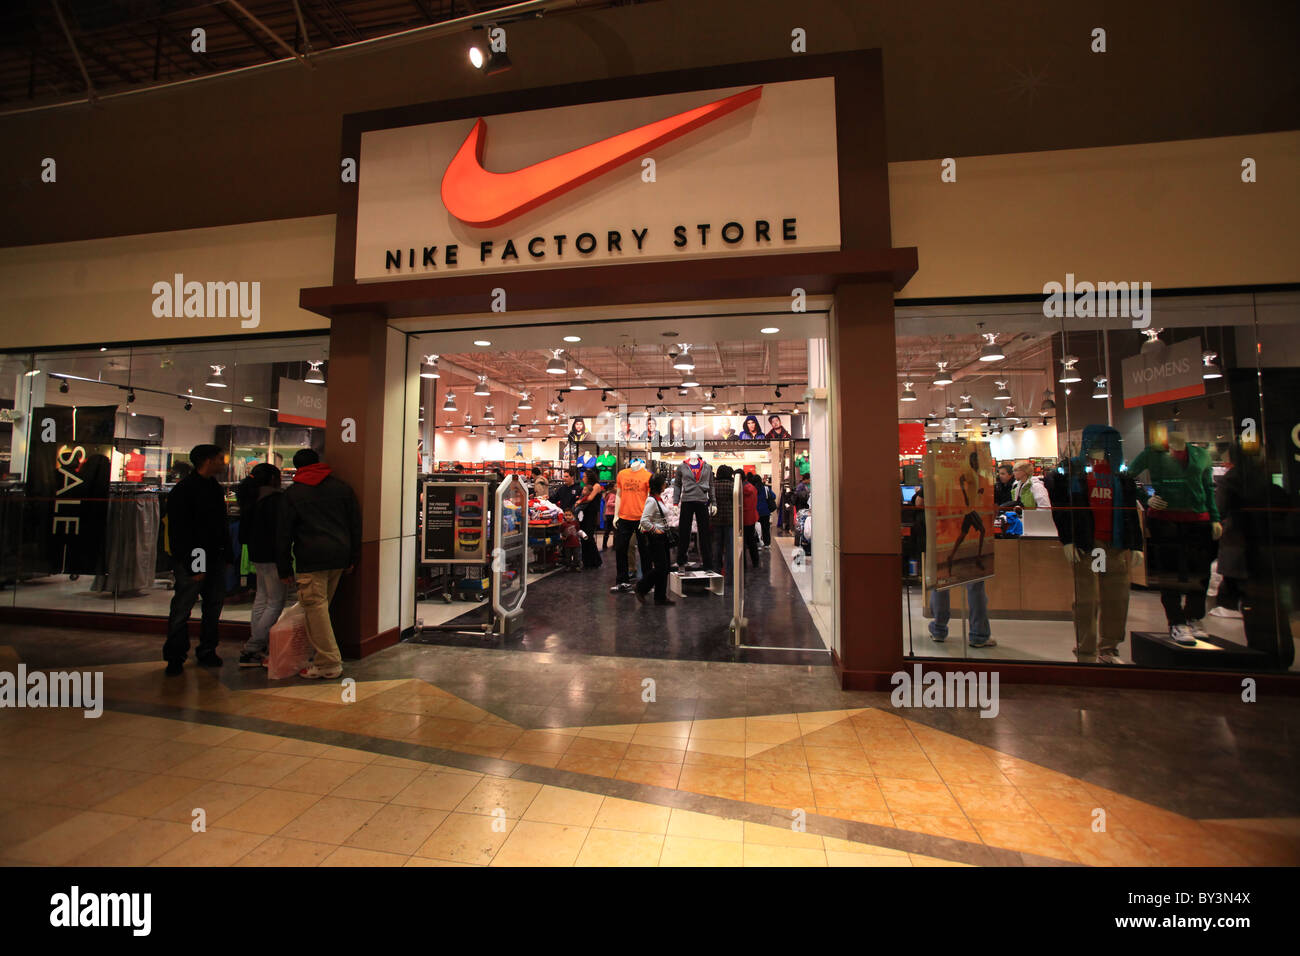 Nike factory outlet store in Vaughan Mills Mall in Toronto, 2010